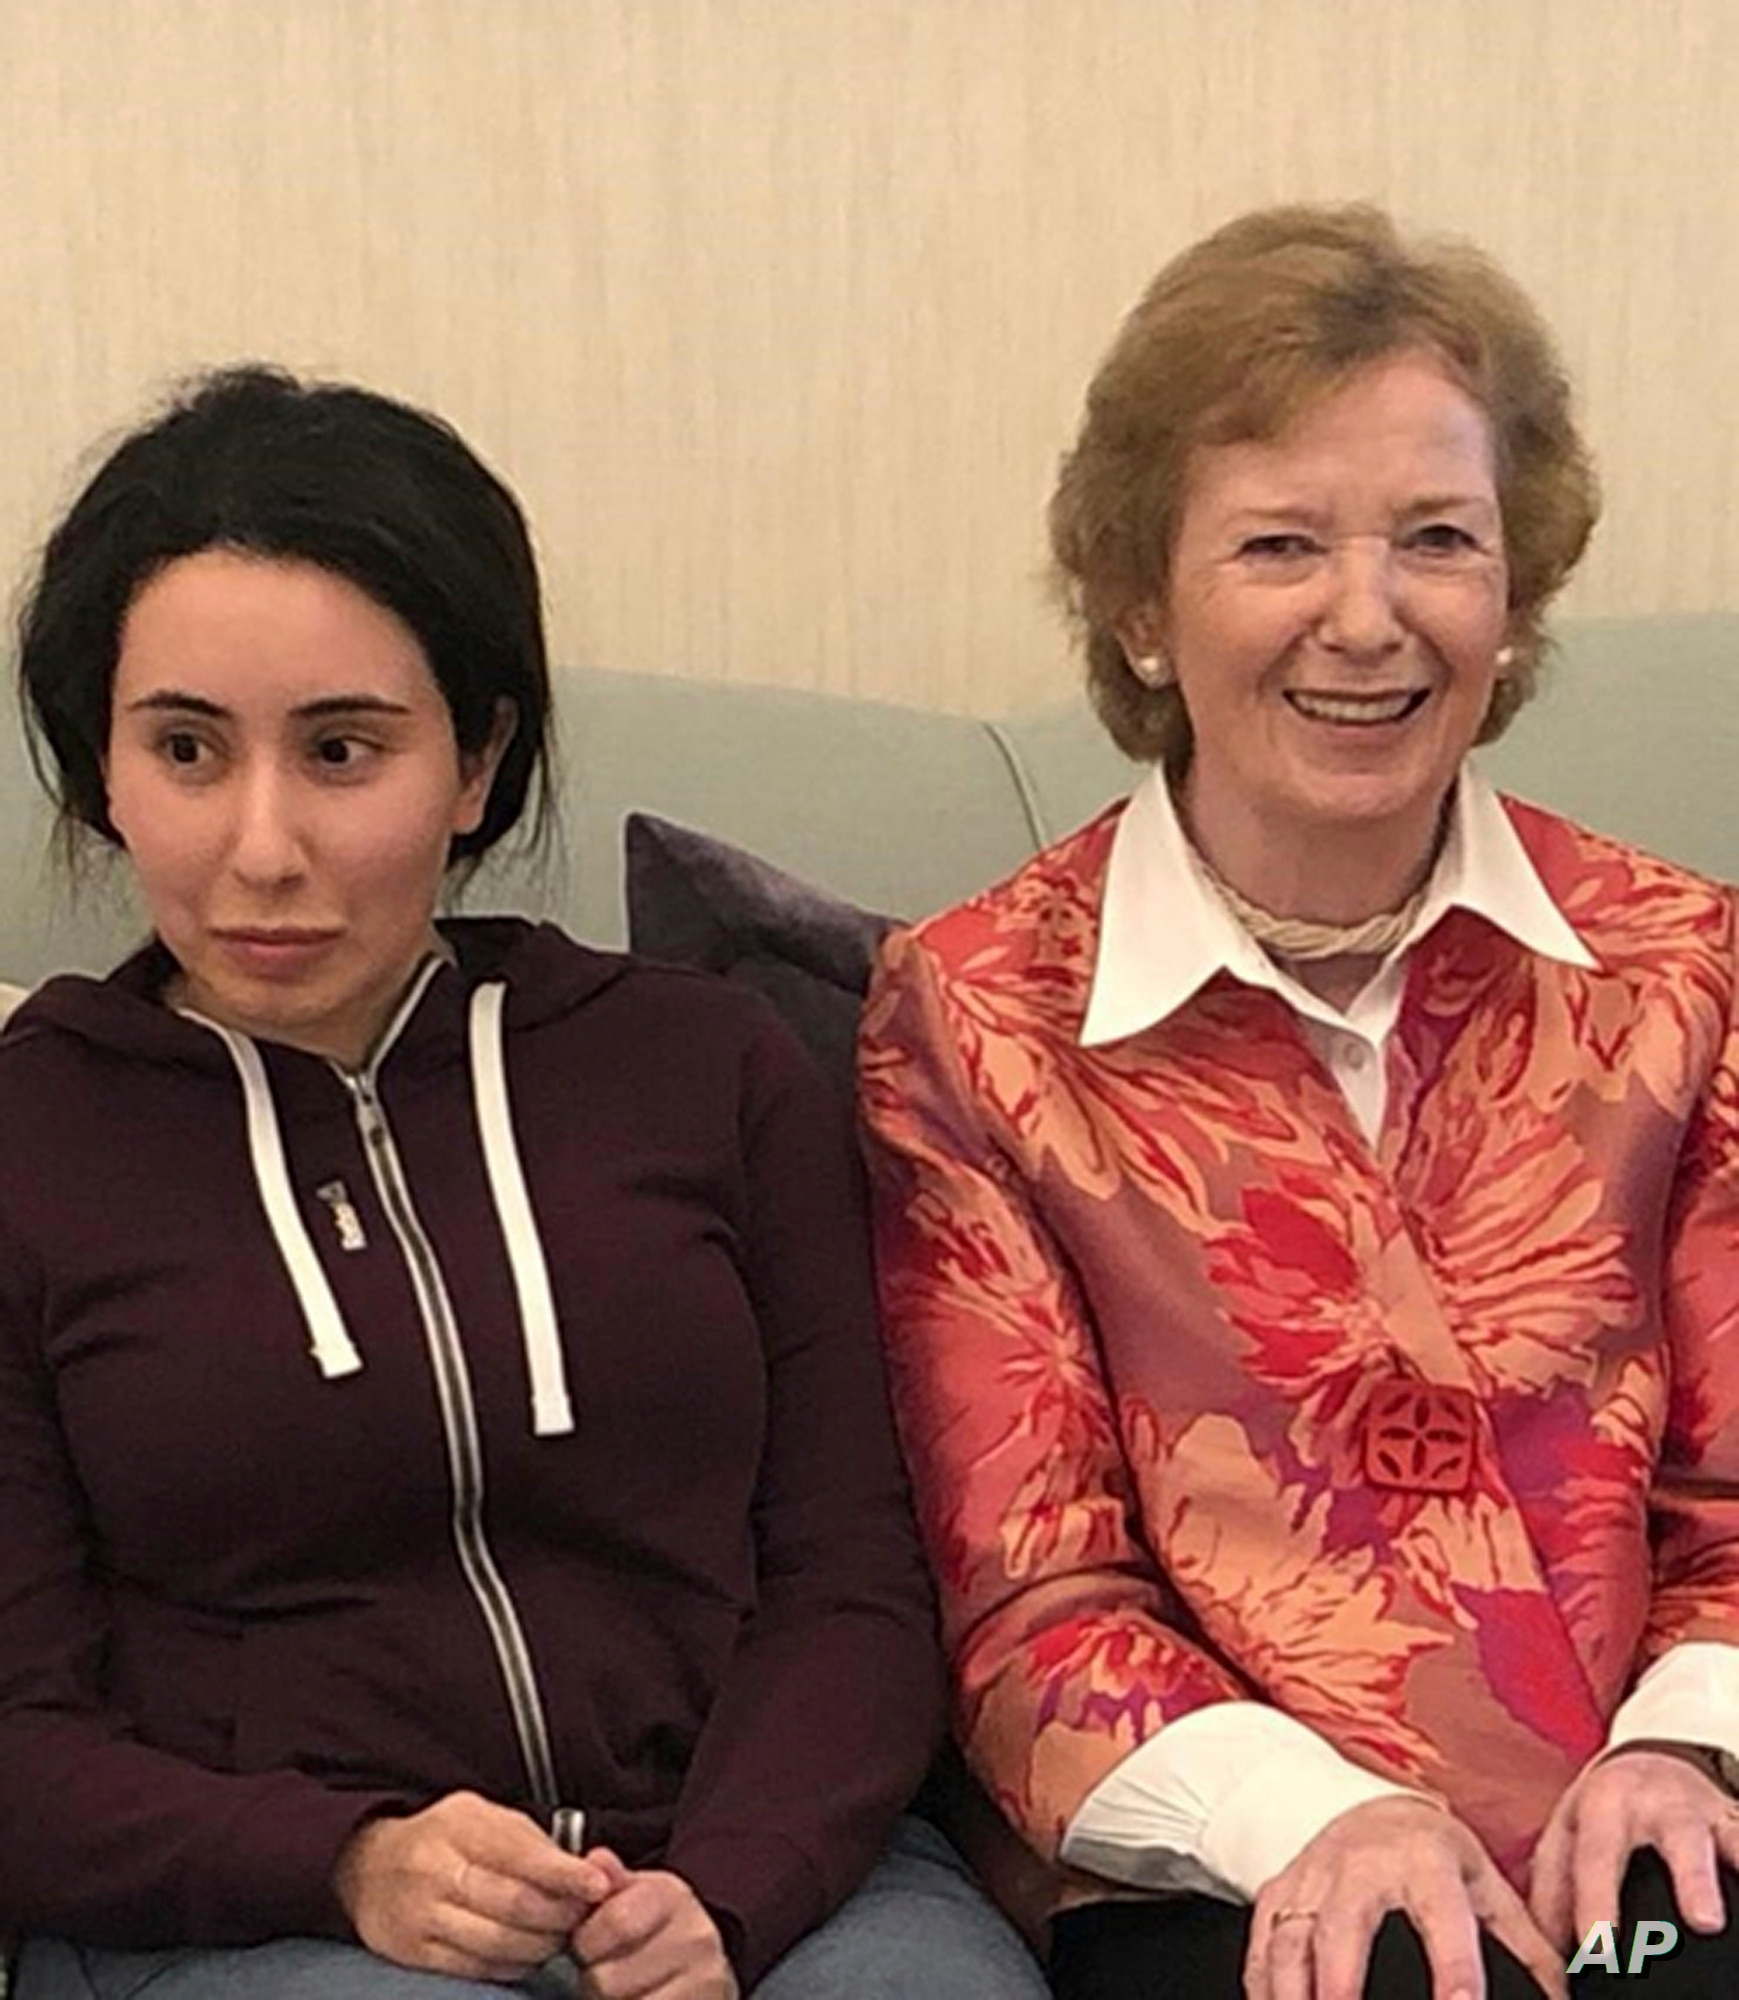 Mary Robinson claims she was 'horribly tricked' over Dubai princess